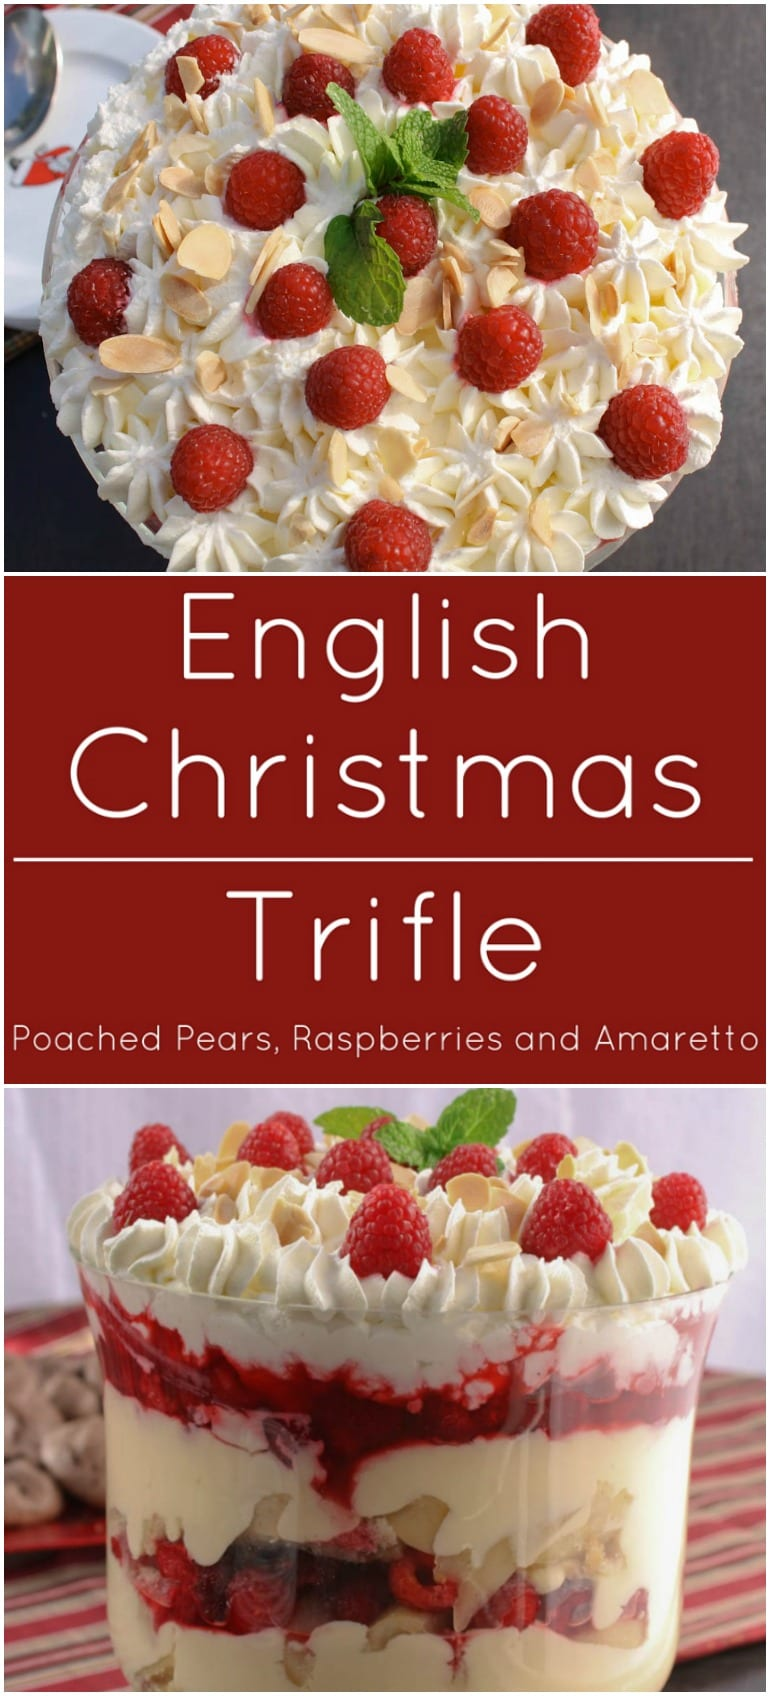 English Christmas Trifle With Almond Pound Cake Soaked Amaretto Liqueur Fresh Raspberries And Poached